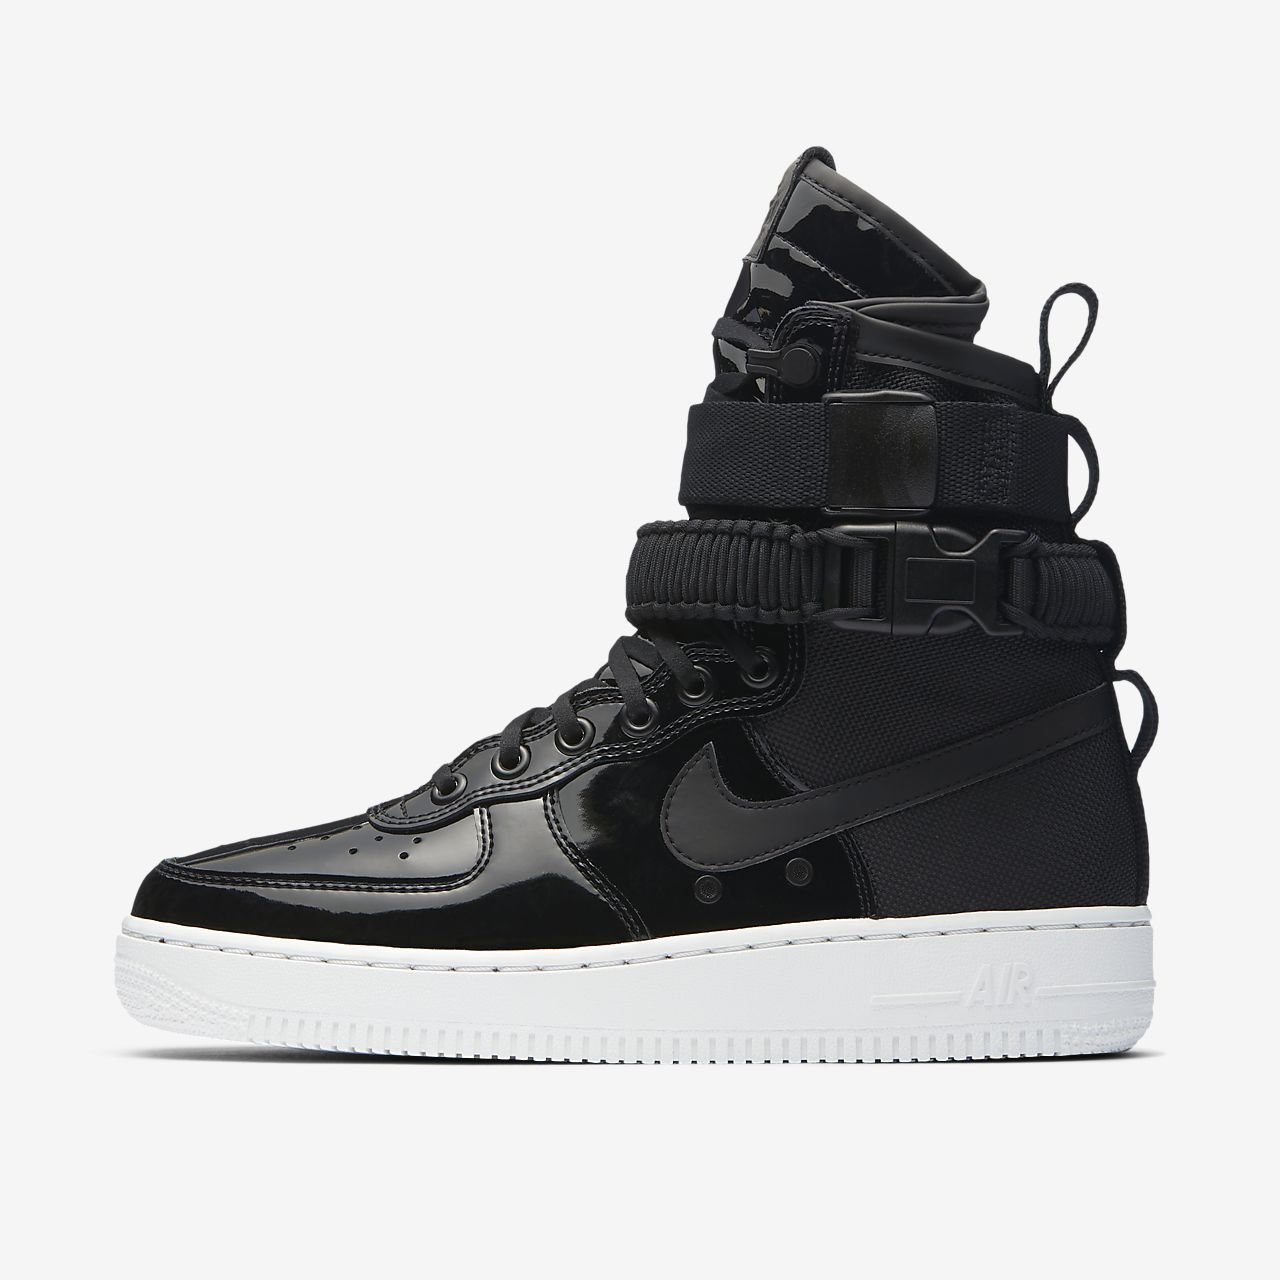 nike air force 1 donna nere alte